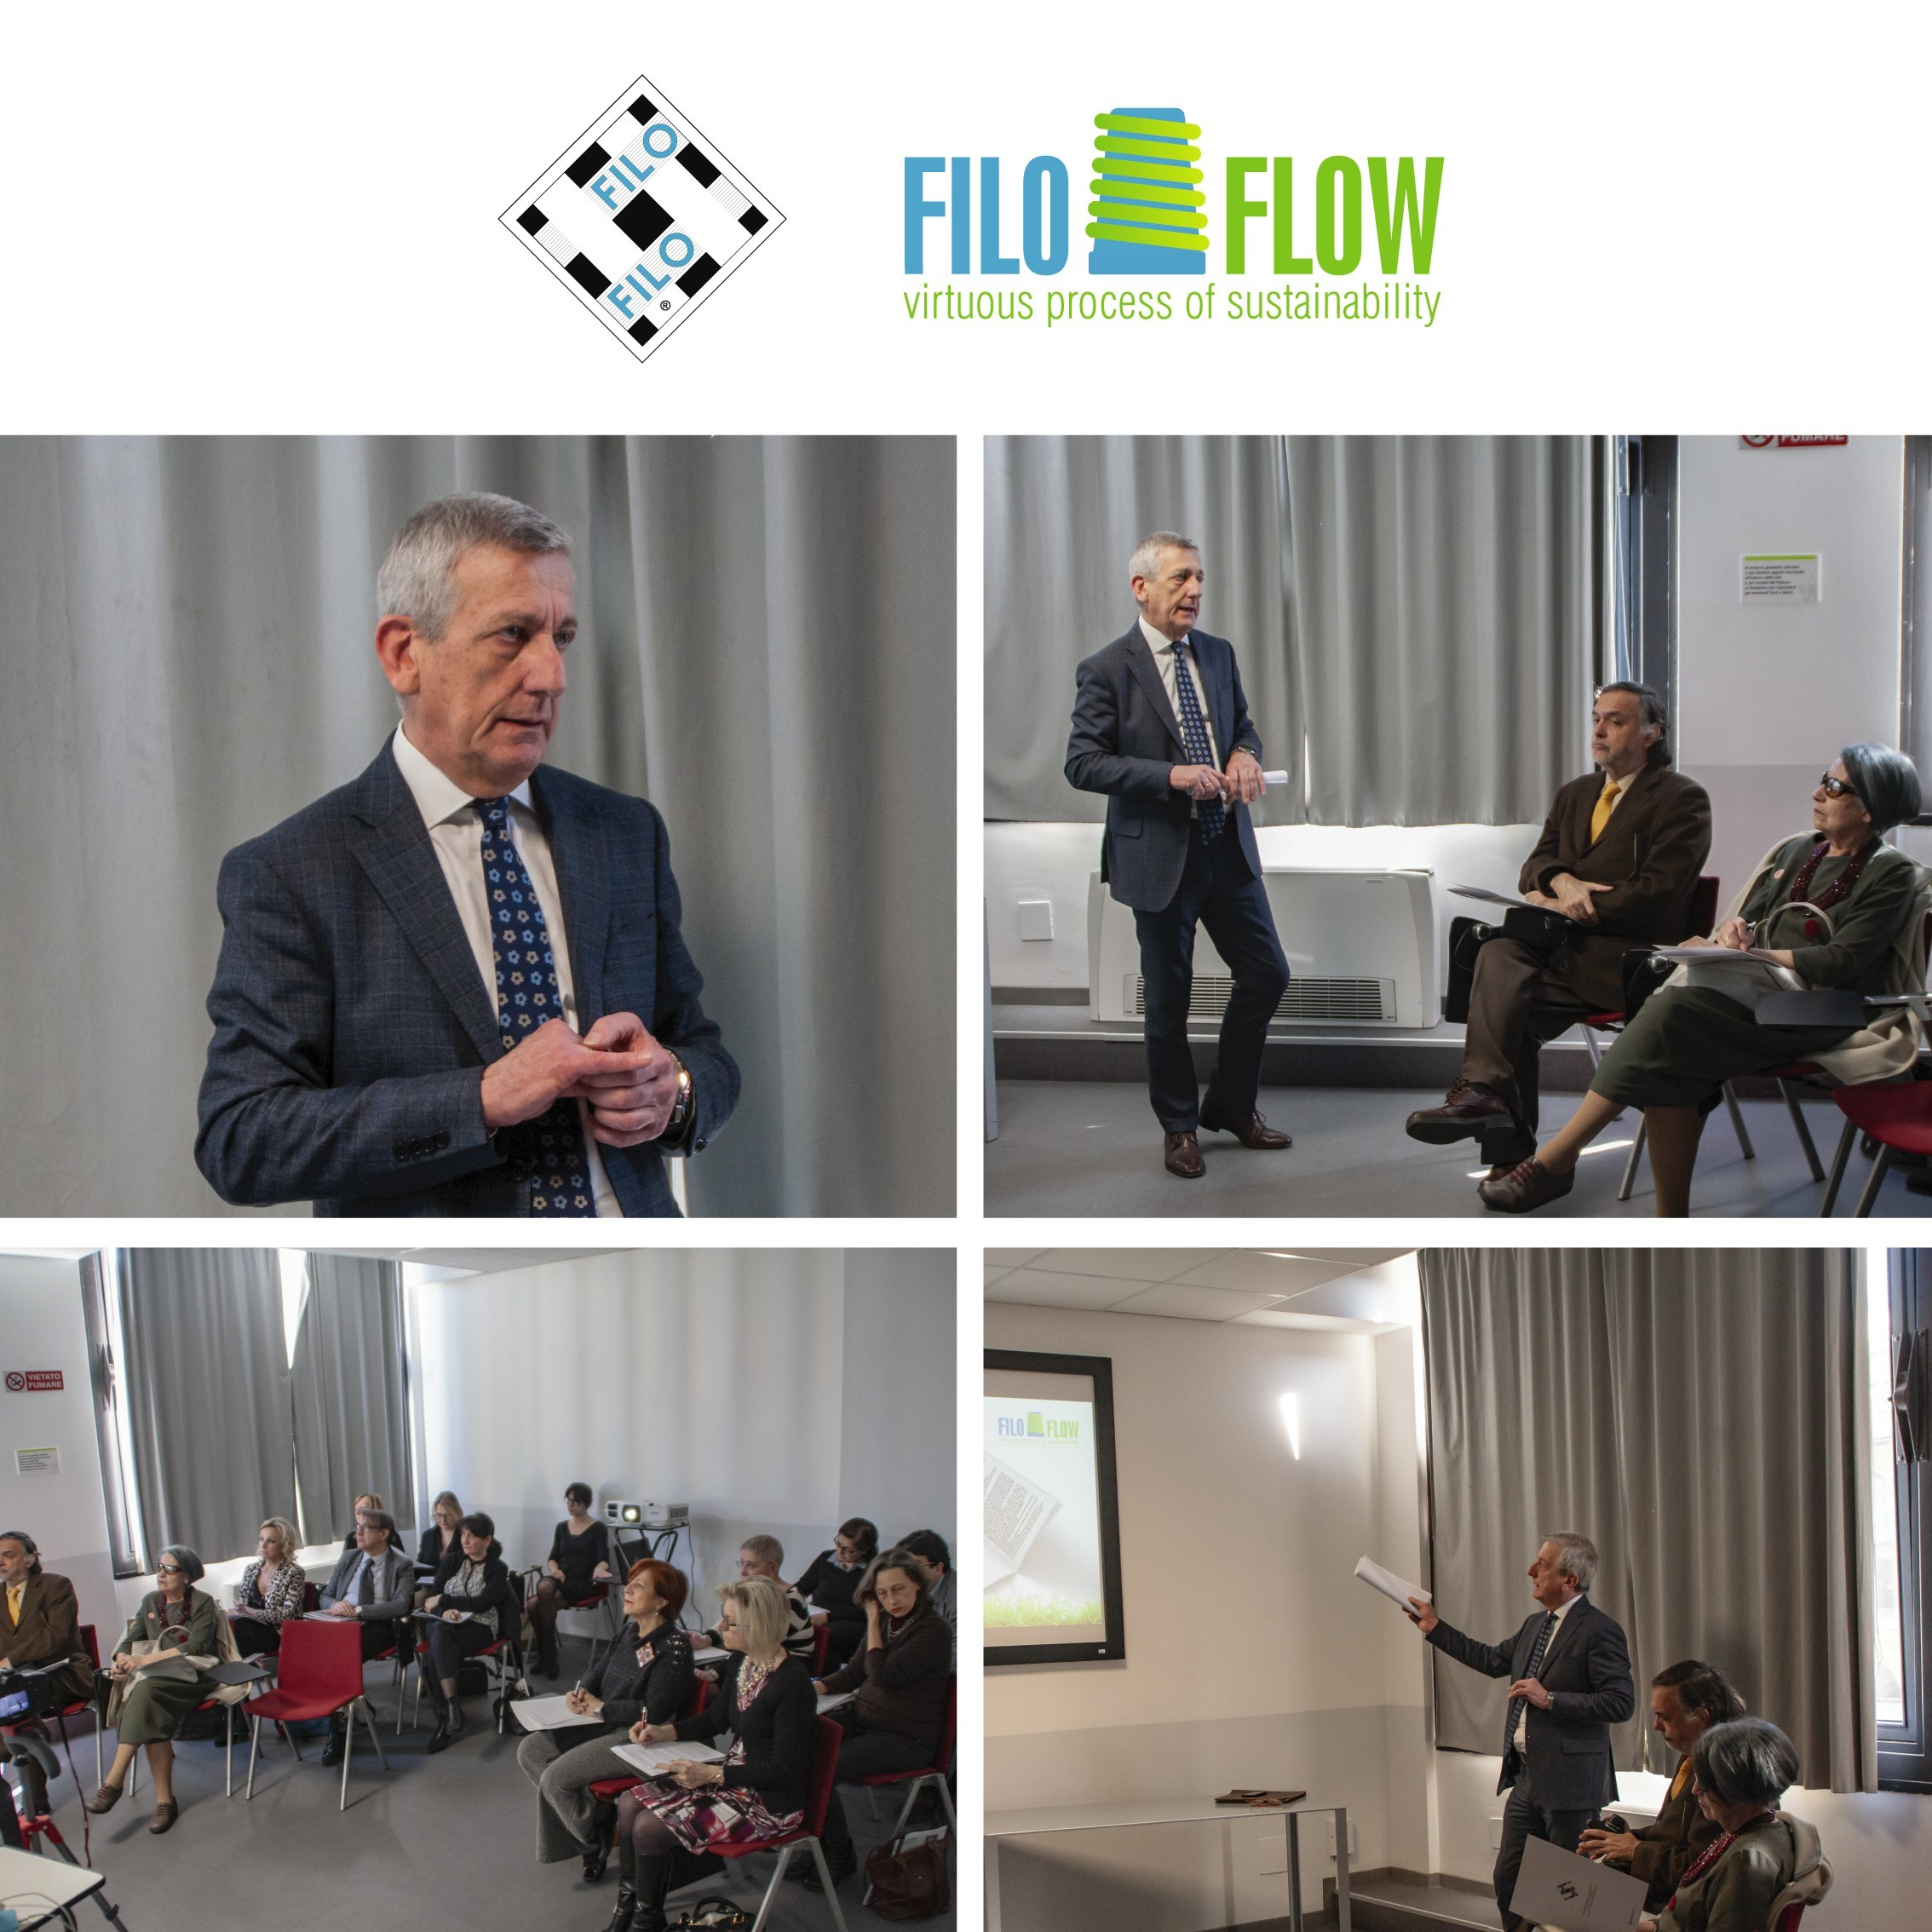 FiloFlow: The Details Of Filo Sustainability Project